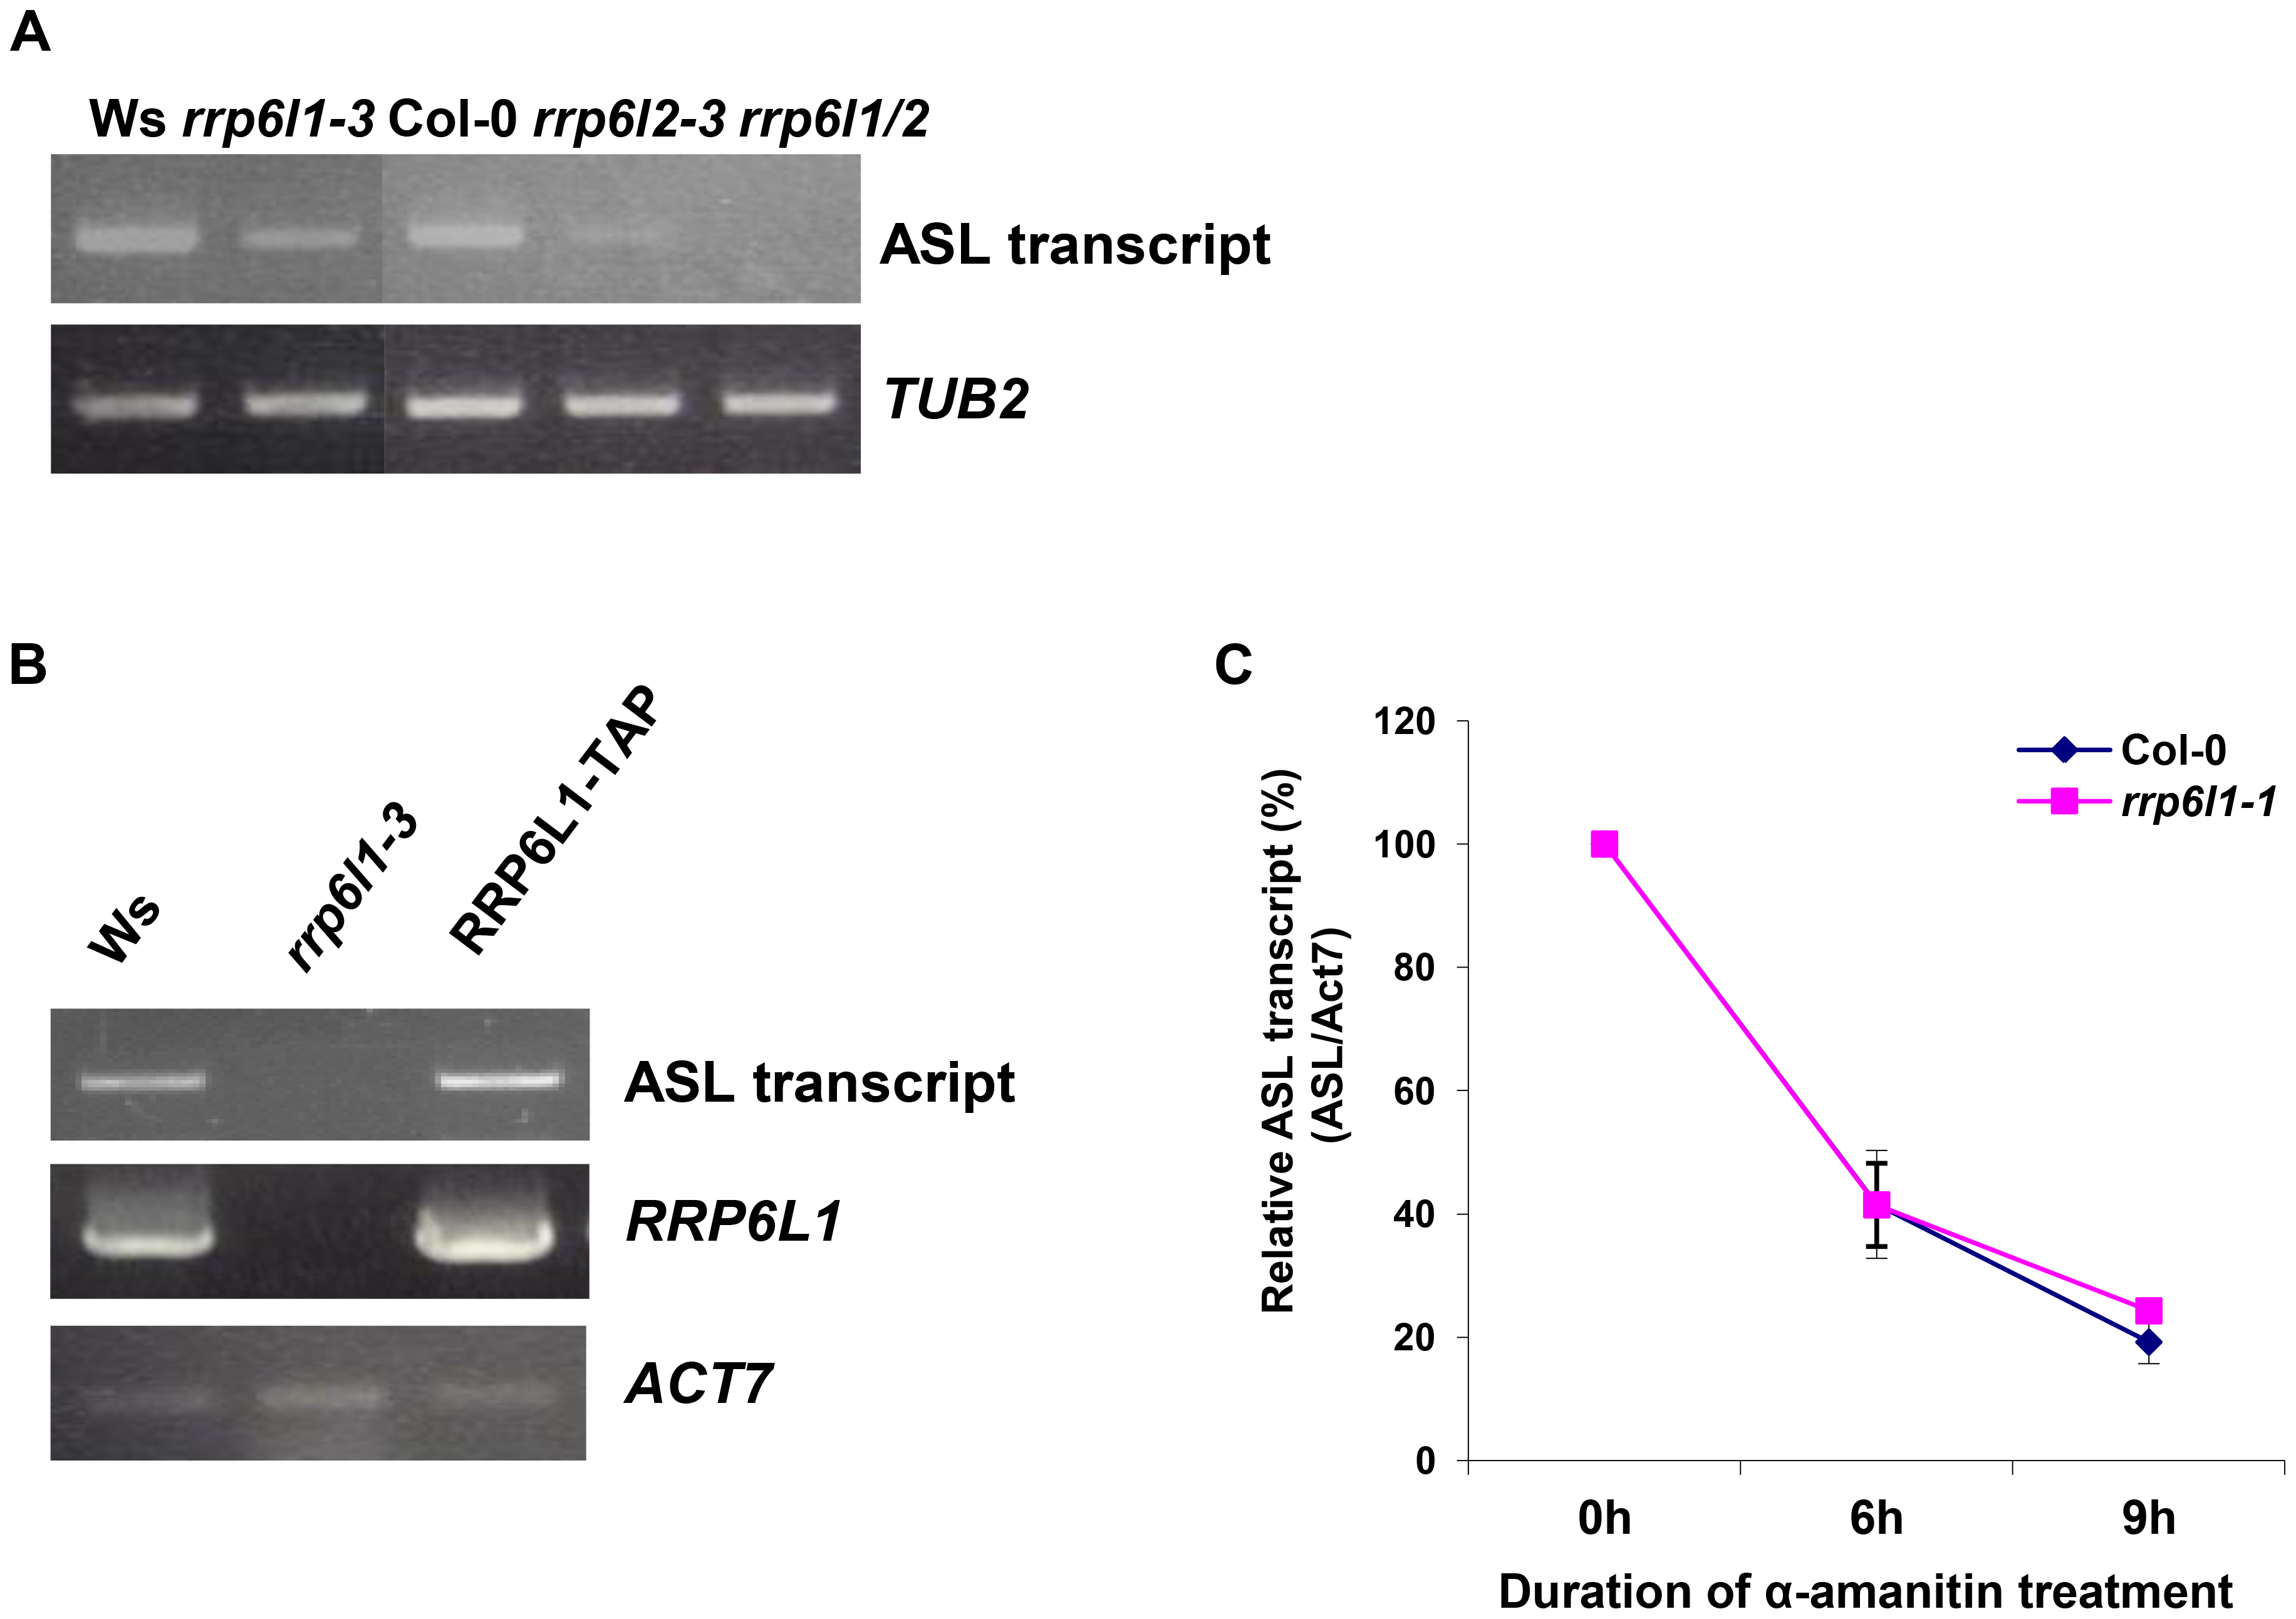 The level of ASL transcripts is decreased in <i>rrp6l</i> mutants.